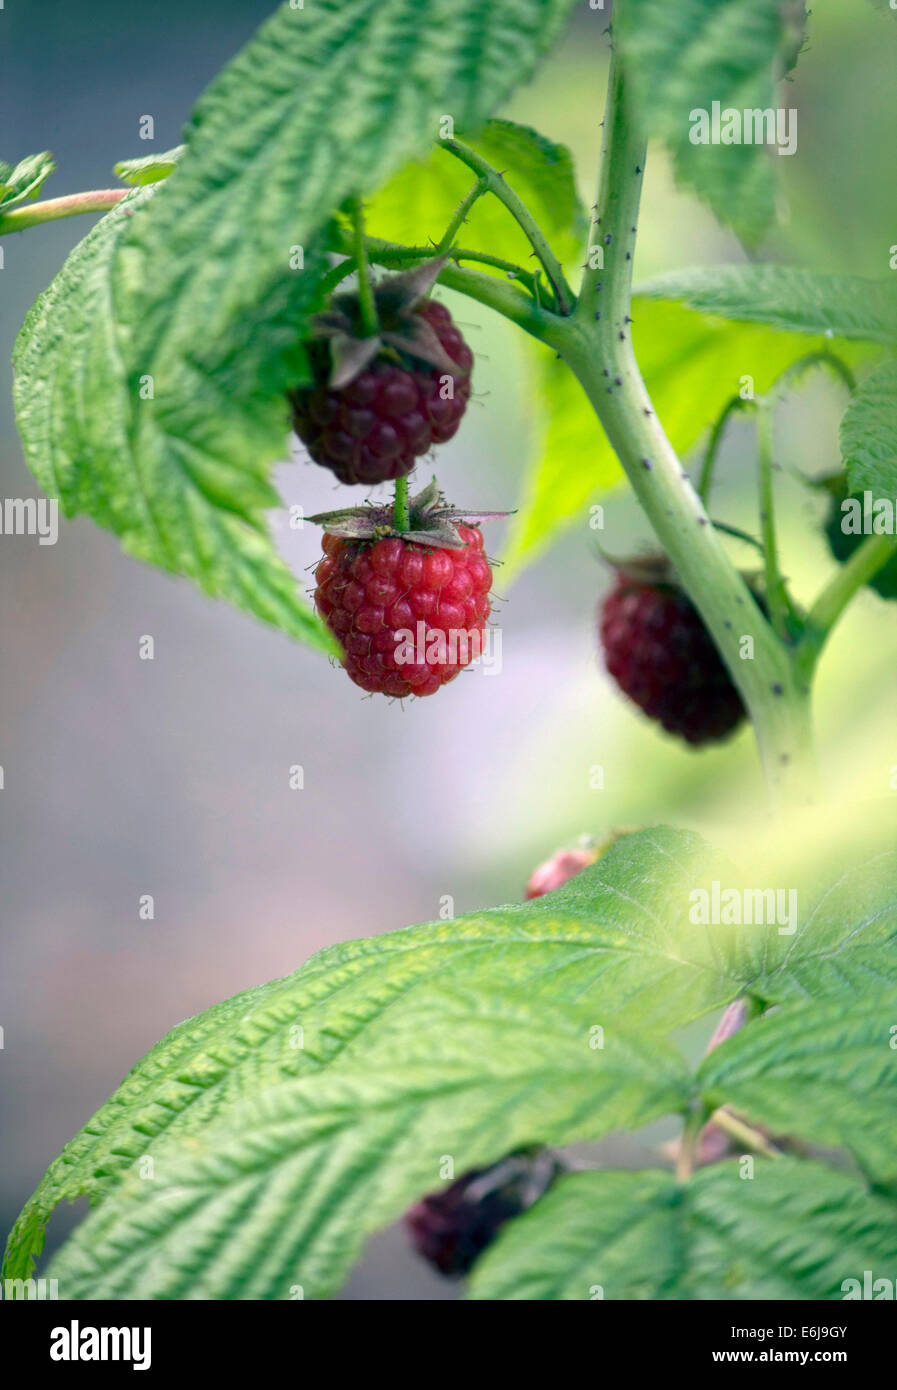 Lovely British raspberries growing wild in an overgrown garden, plump and red, ripe for picking - Stock Image